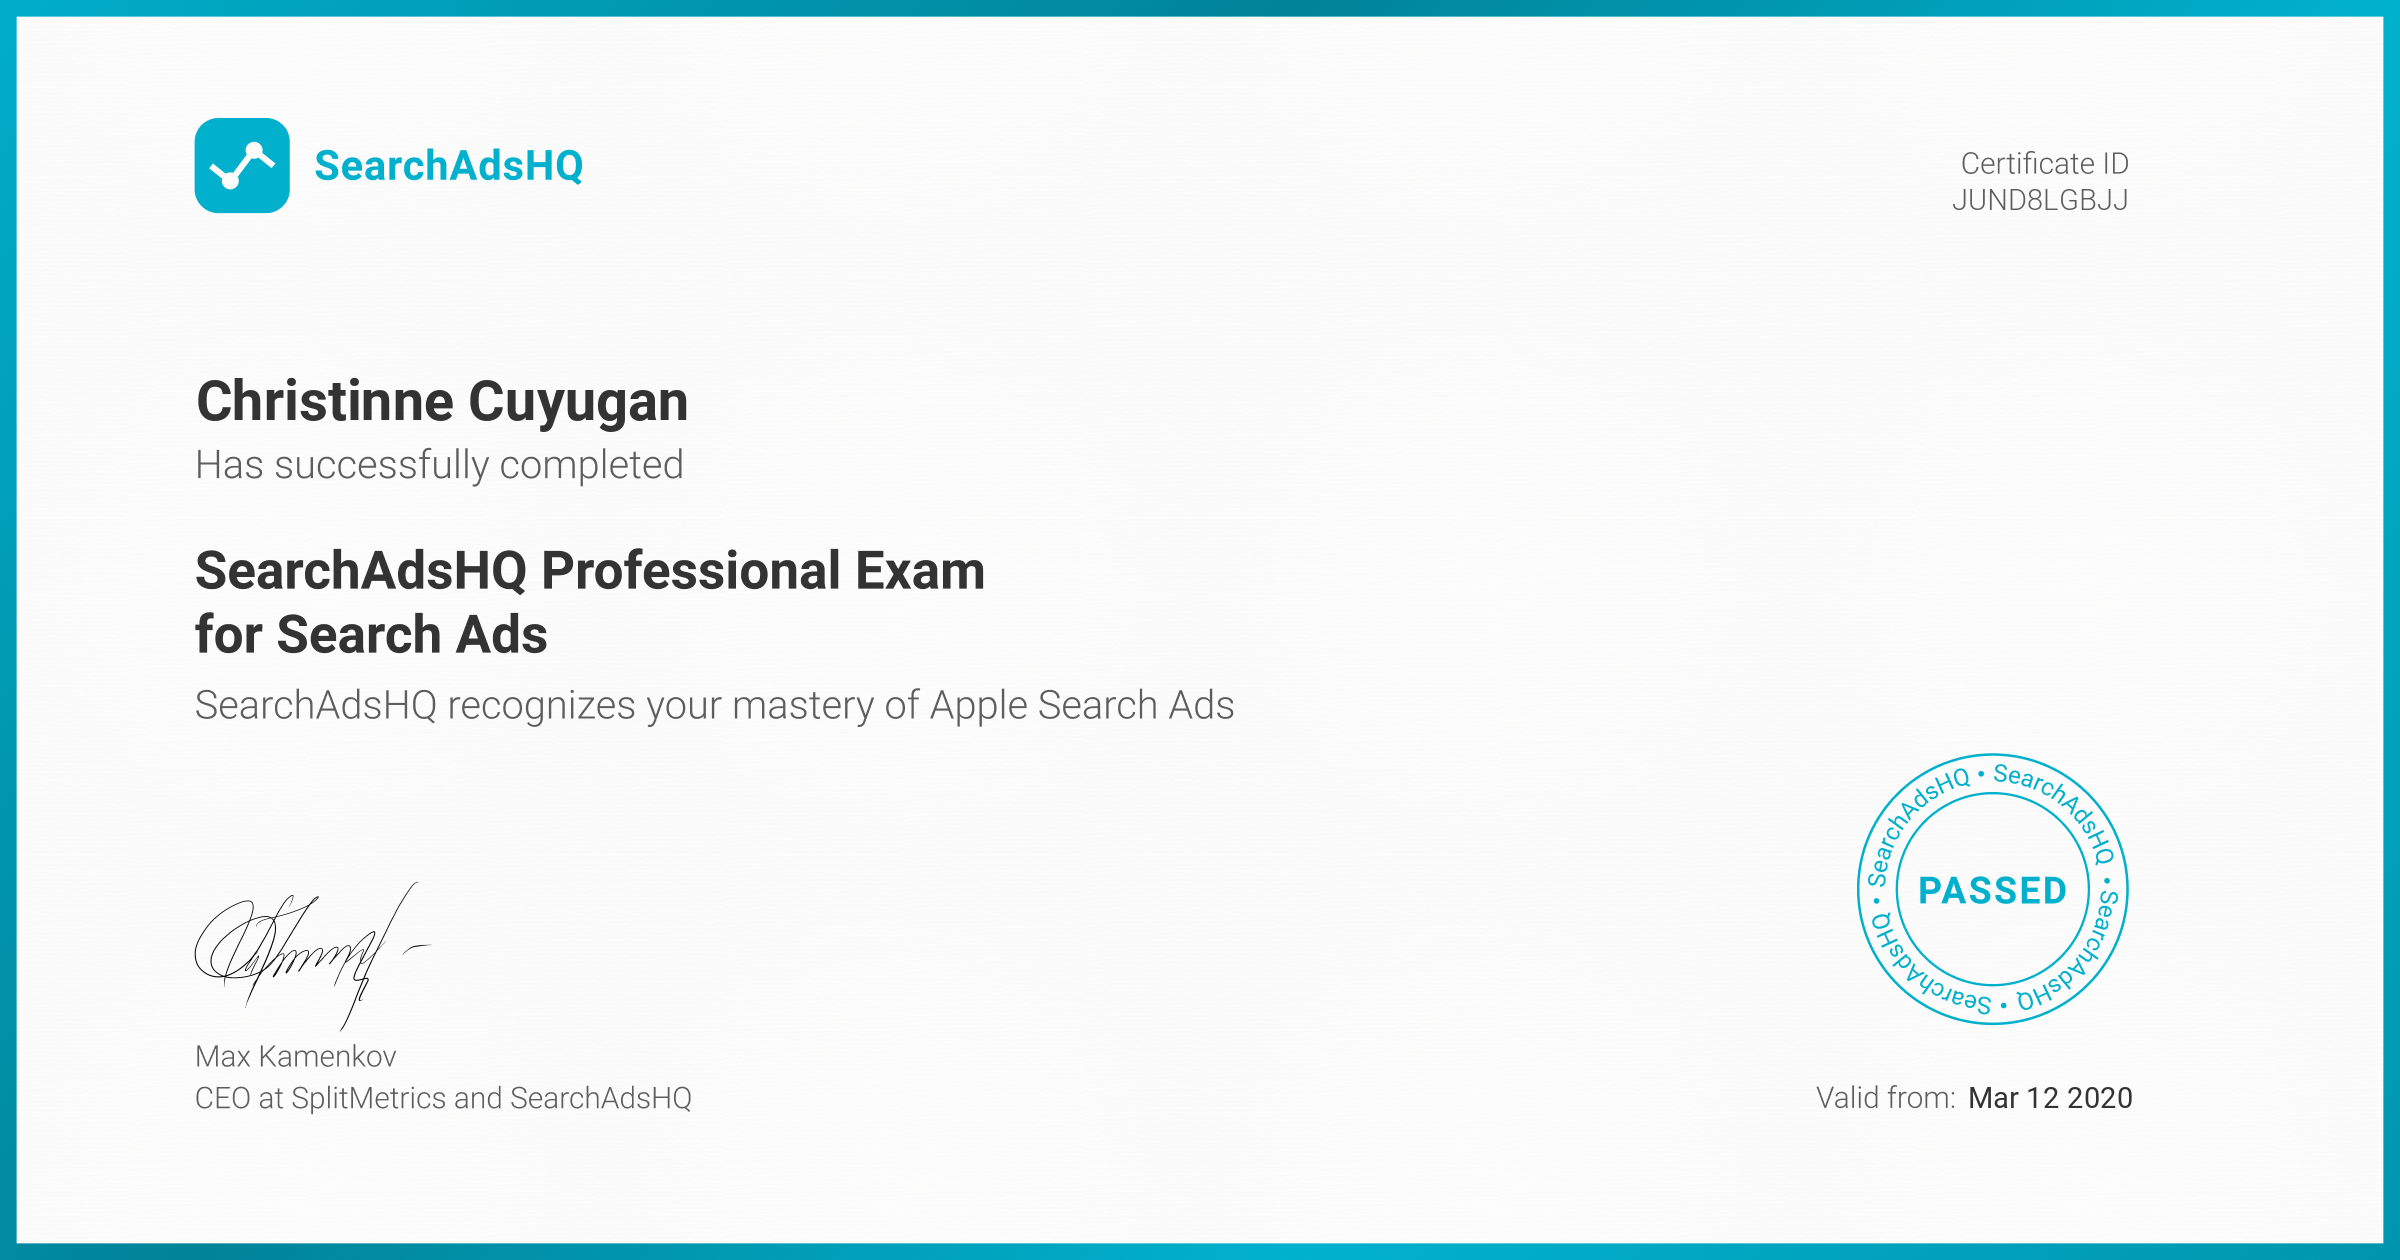 Certificate for Christinne Cuyugan | SearchAdsHQ Professional Exam for Search Ads